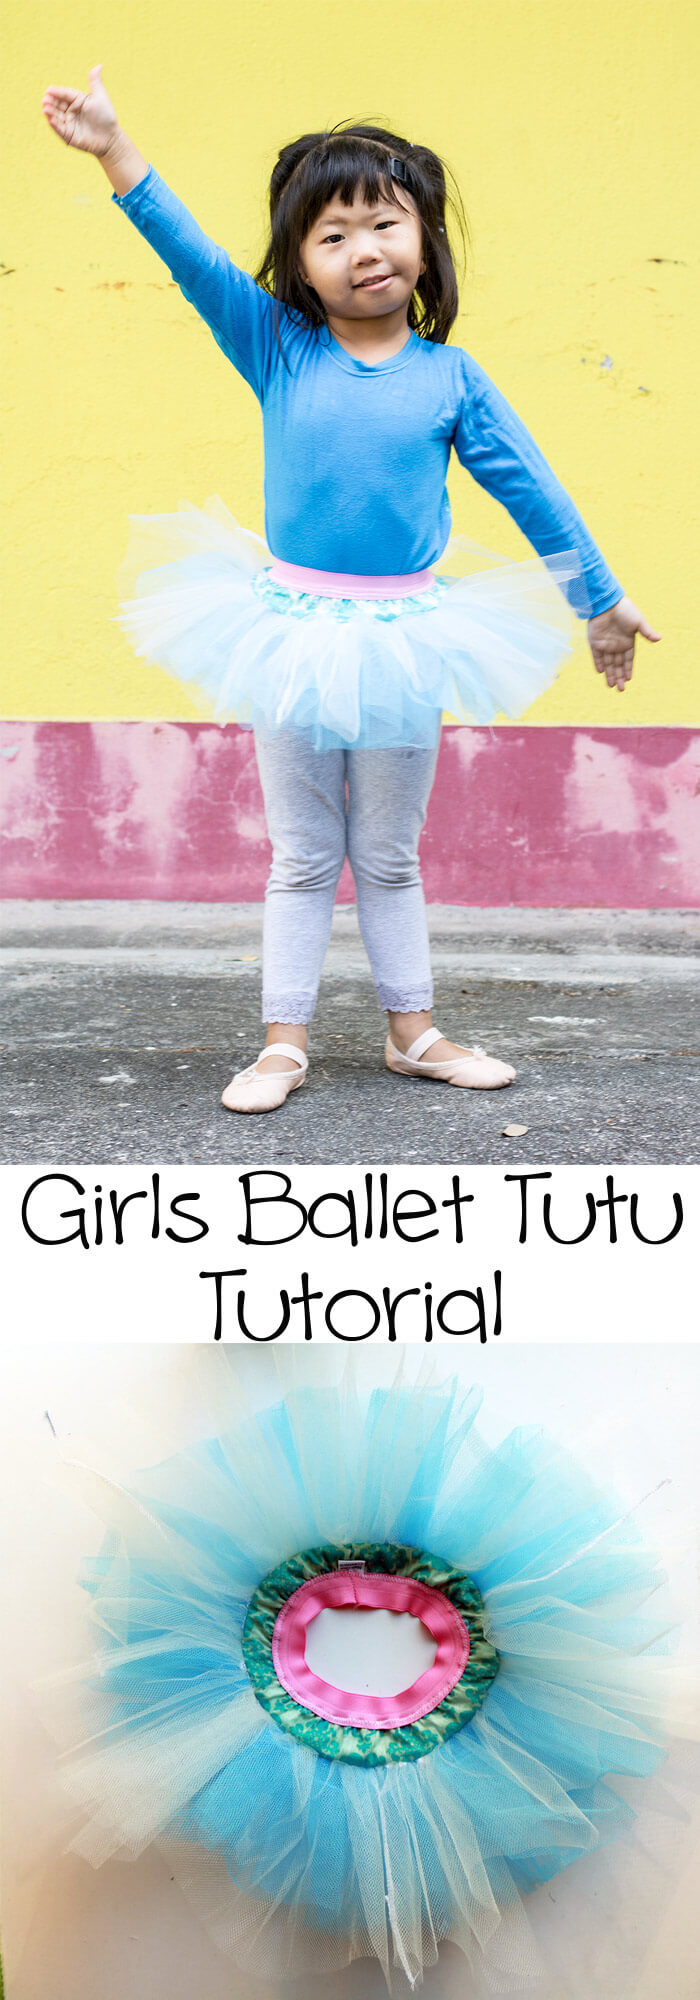 Classic Ballet tutu sewing tutorial by LIfe Sew Savory